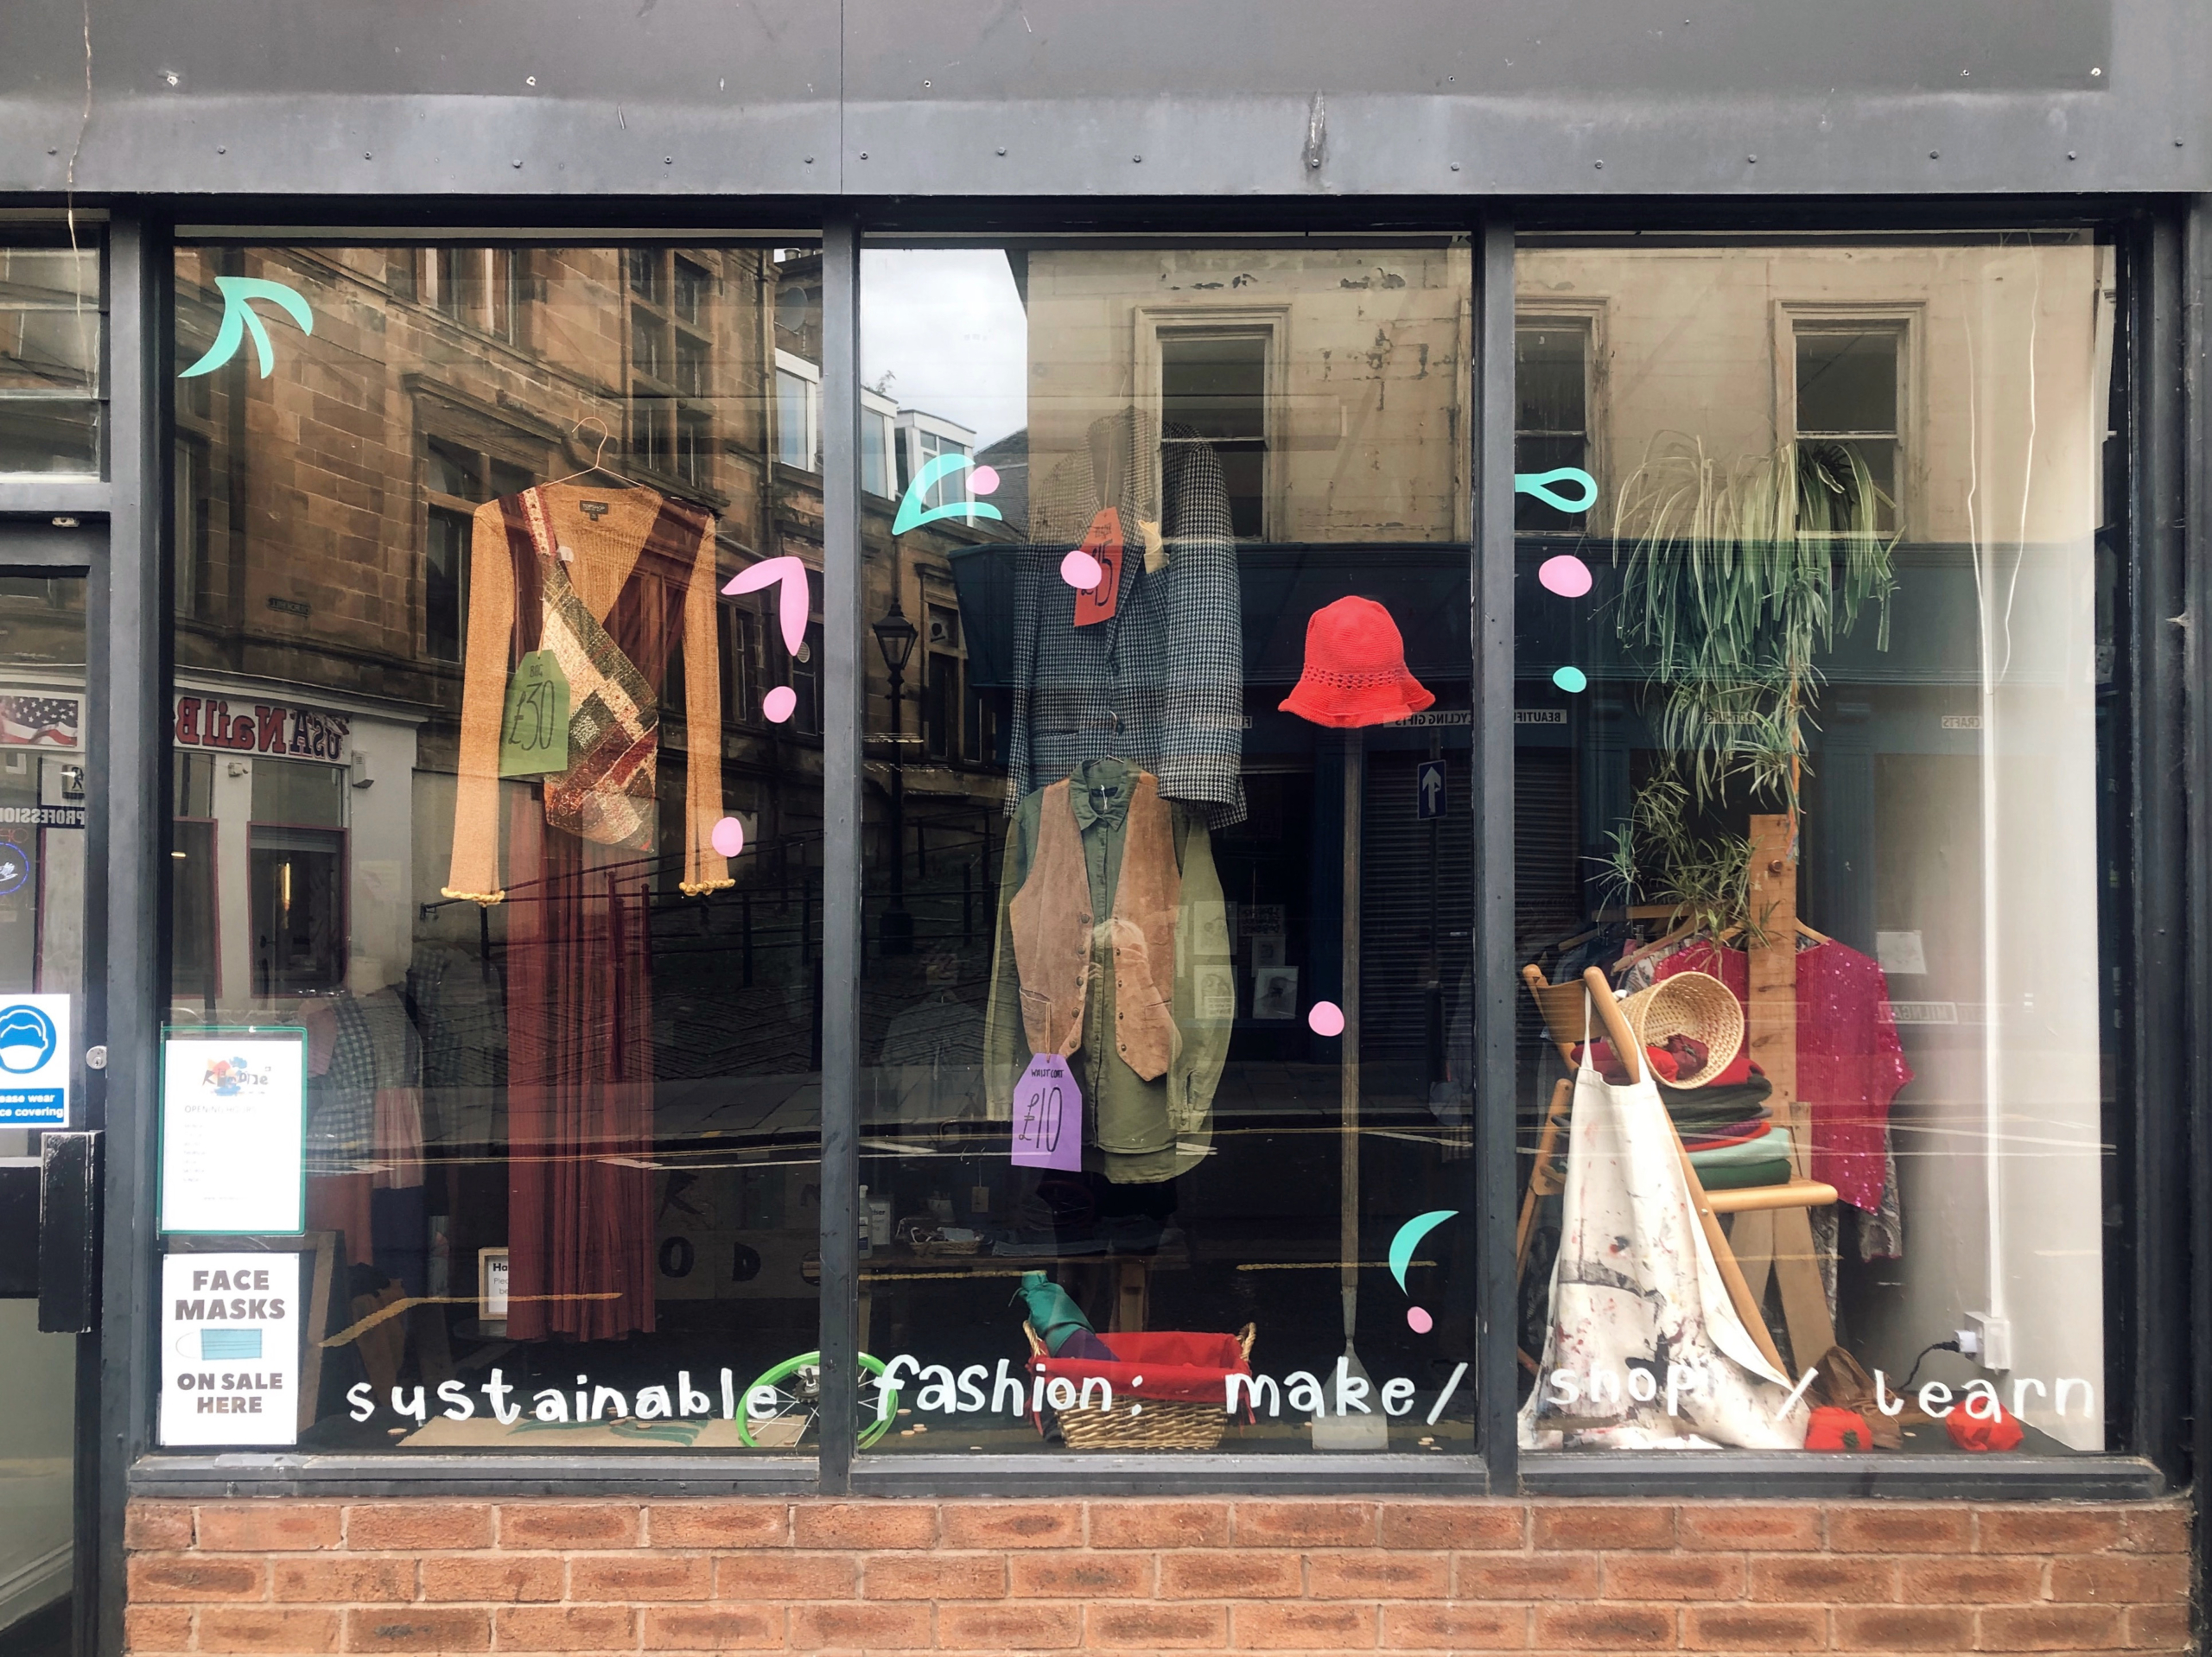 The September window display